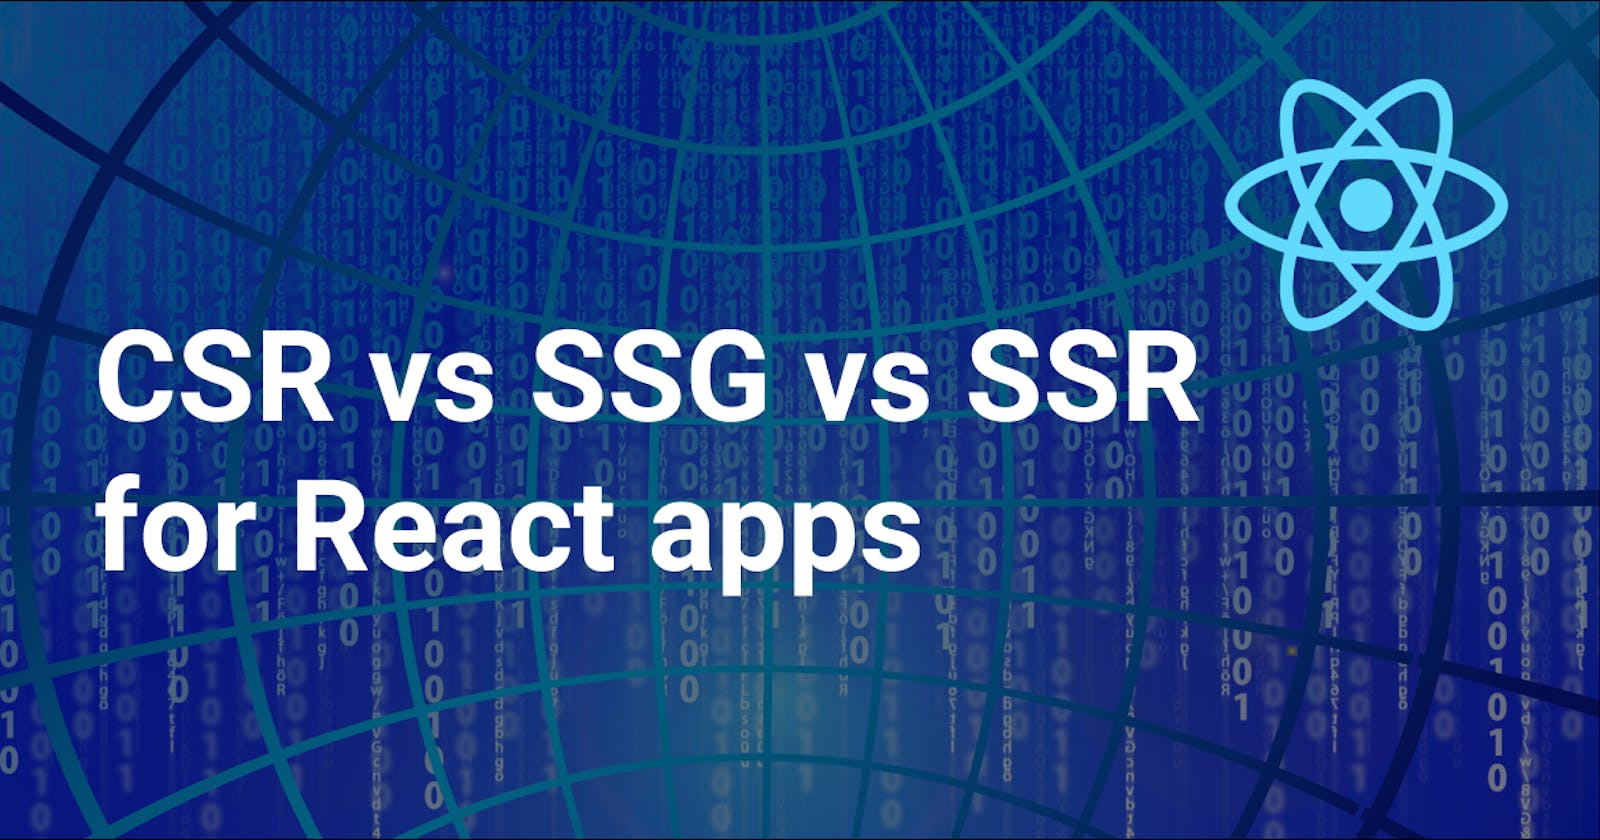 Choosing between client-side rendering, server-side rendering and static site generation for React apps